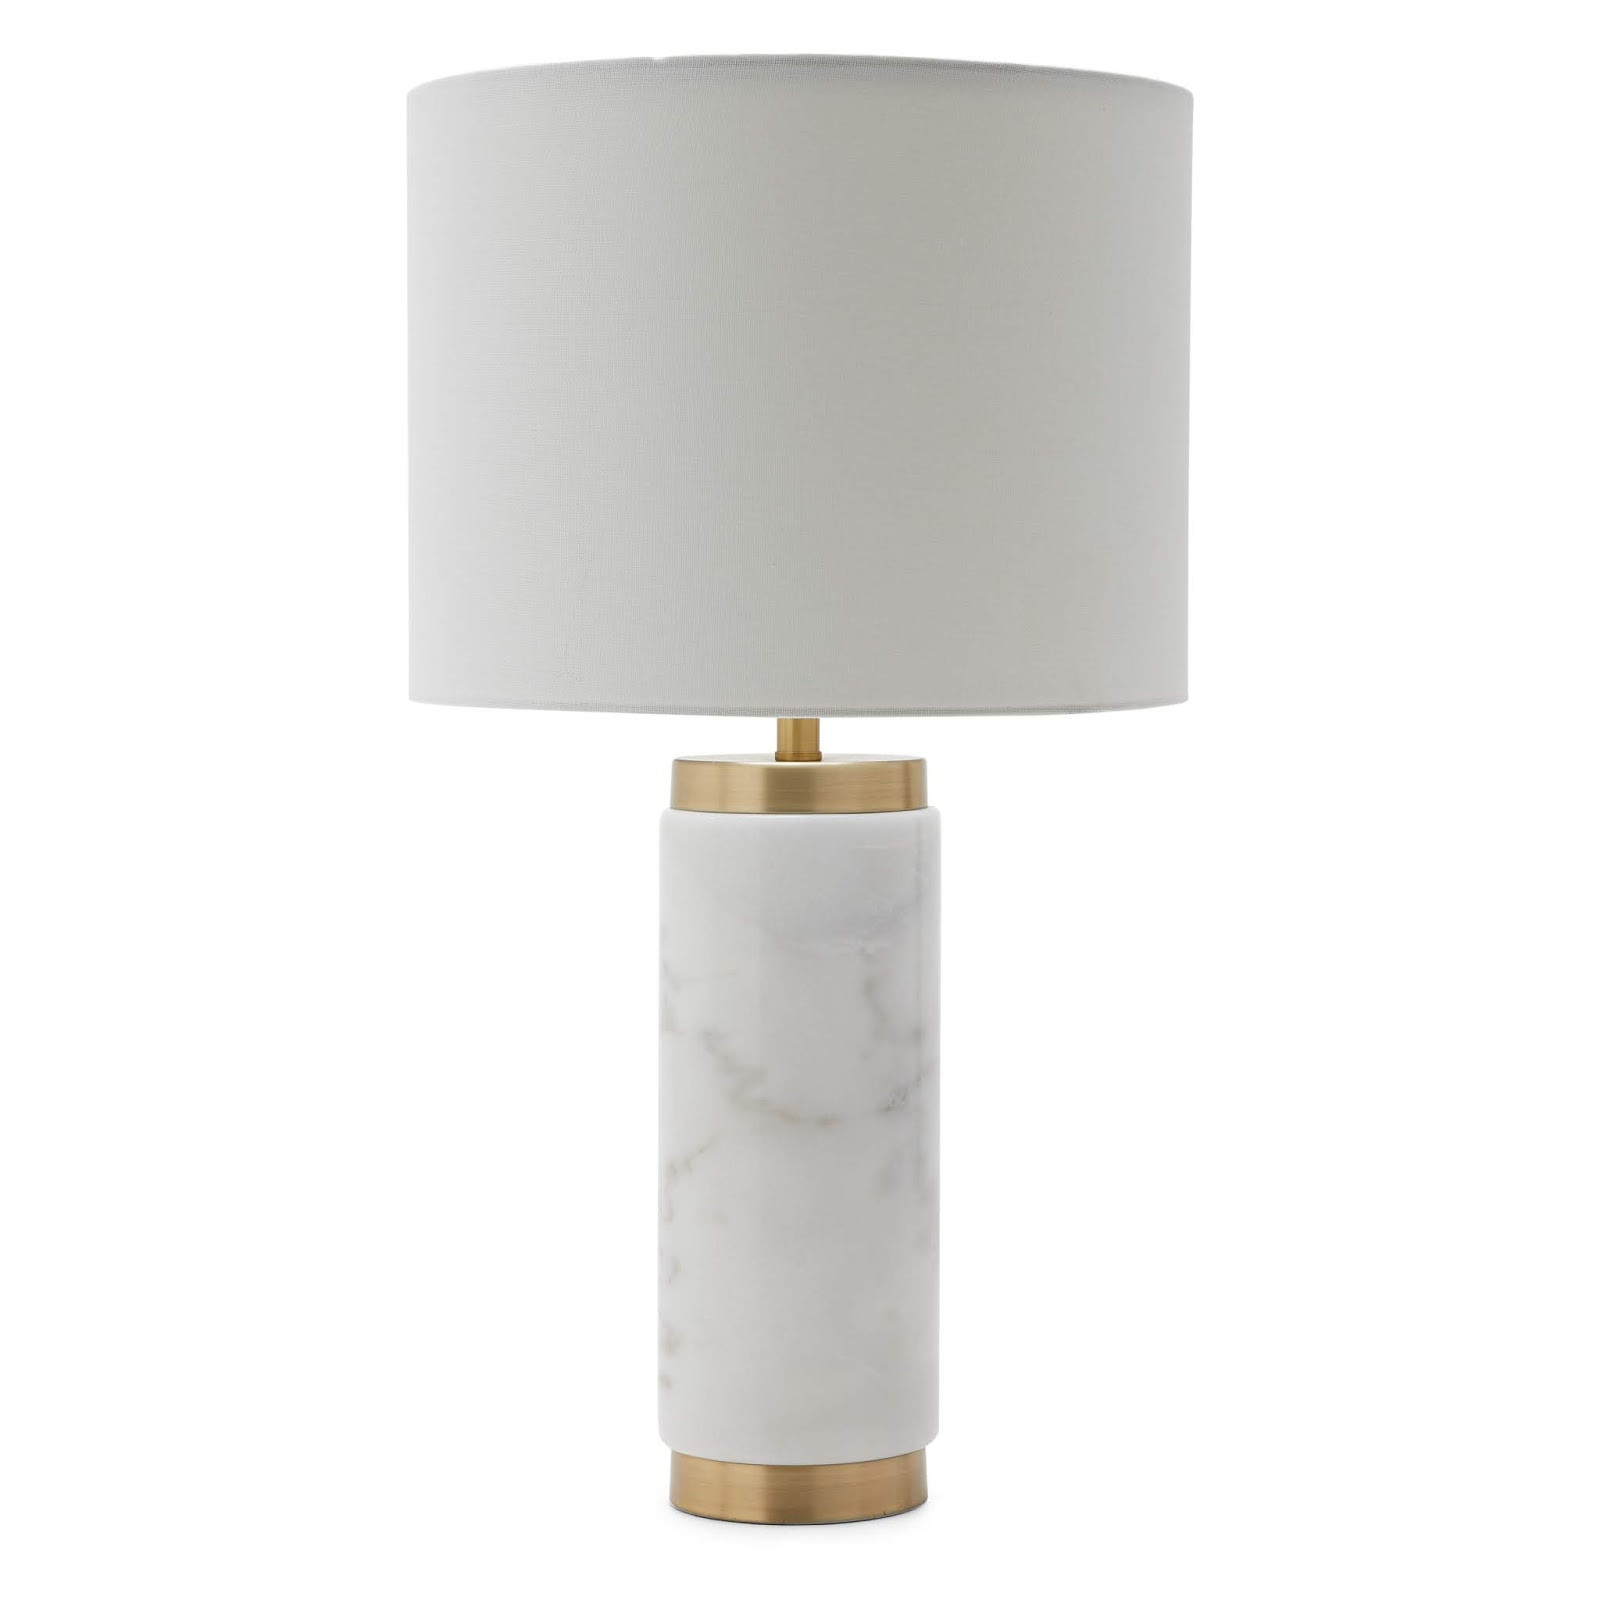 Modern marble lamp from Walmart